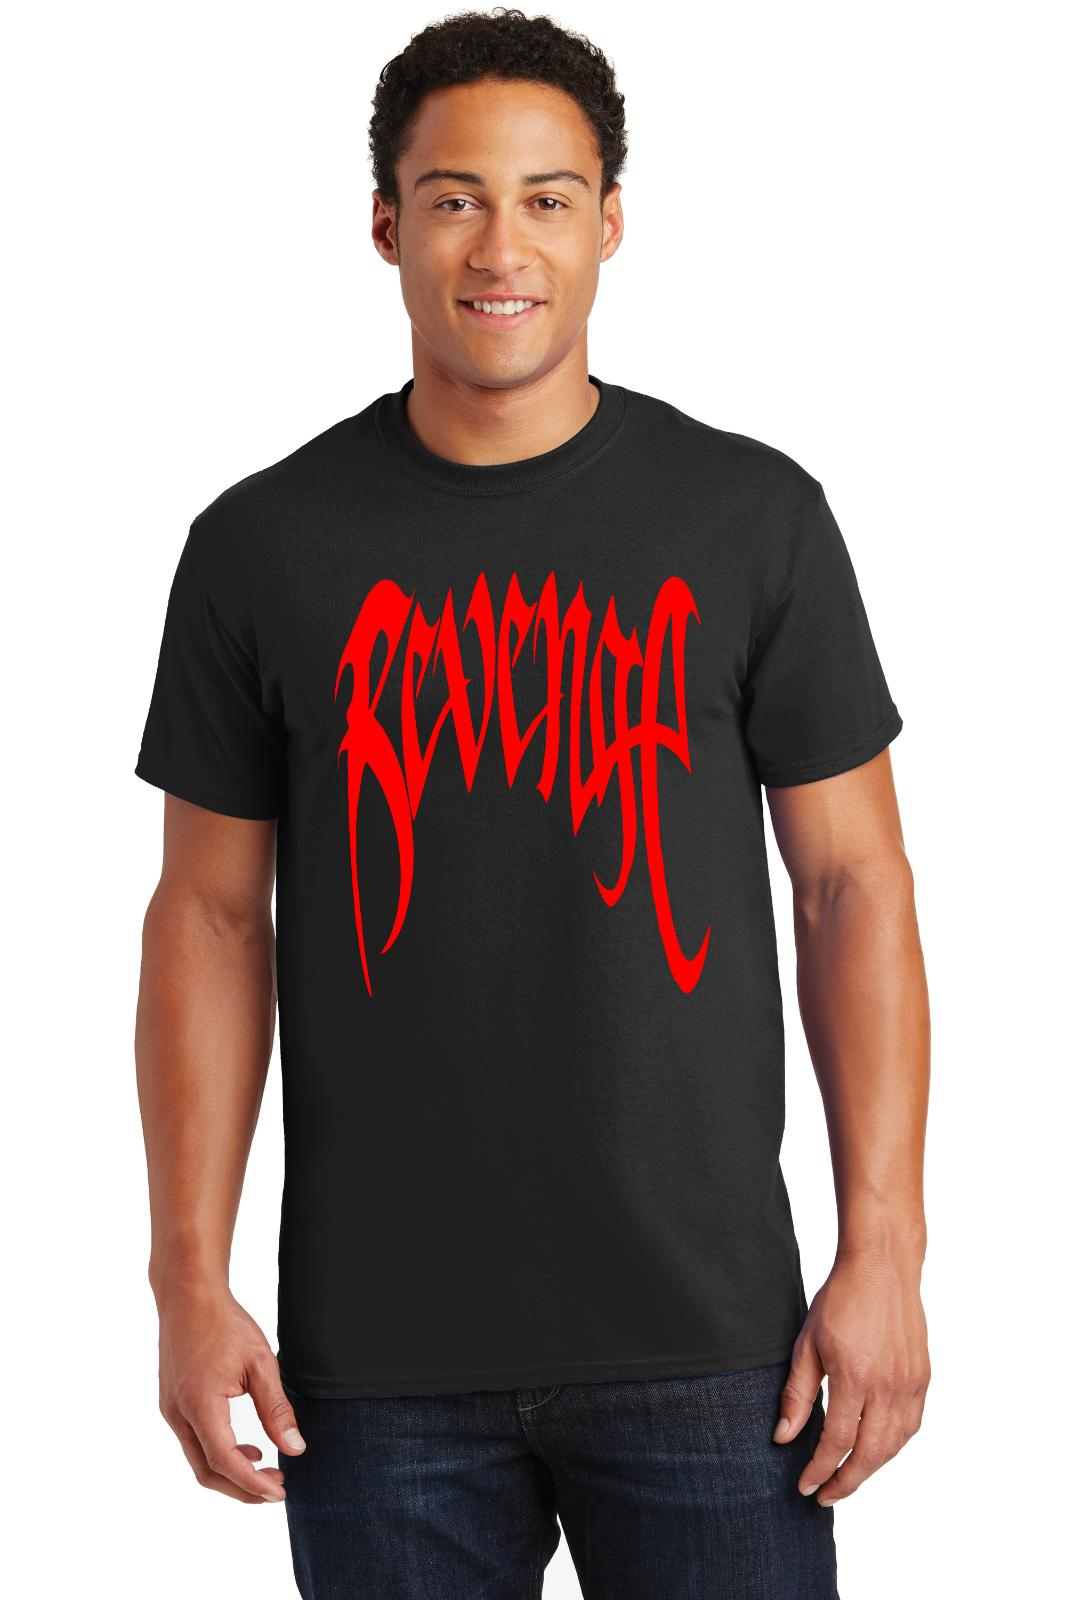 0fc82d5780aa Revenge T Shirt XXXTentacion Skull Kill Savage RAP Music Tee ShirtsFunny  Unisex Casual Top Humorous Shirts Buy Tee Shirts From Dragontee, $12.96|  DHgate.Com